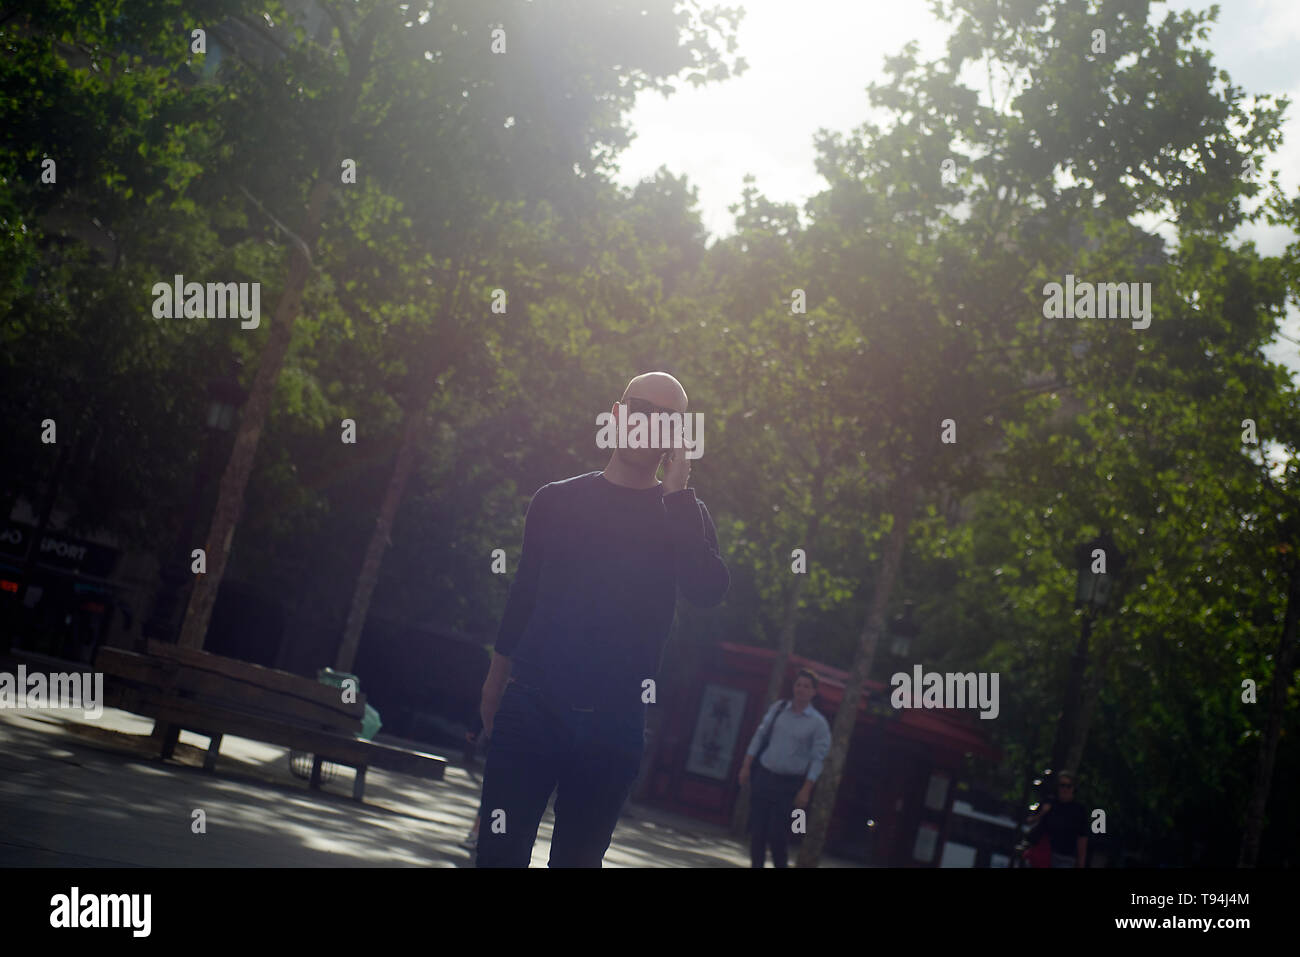 A local business man strolling and walking in the city centre of Paris exploring the city and its sights - Stock Image